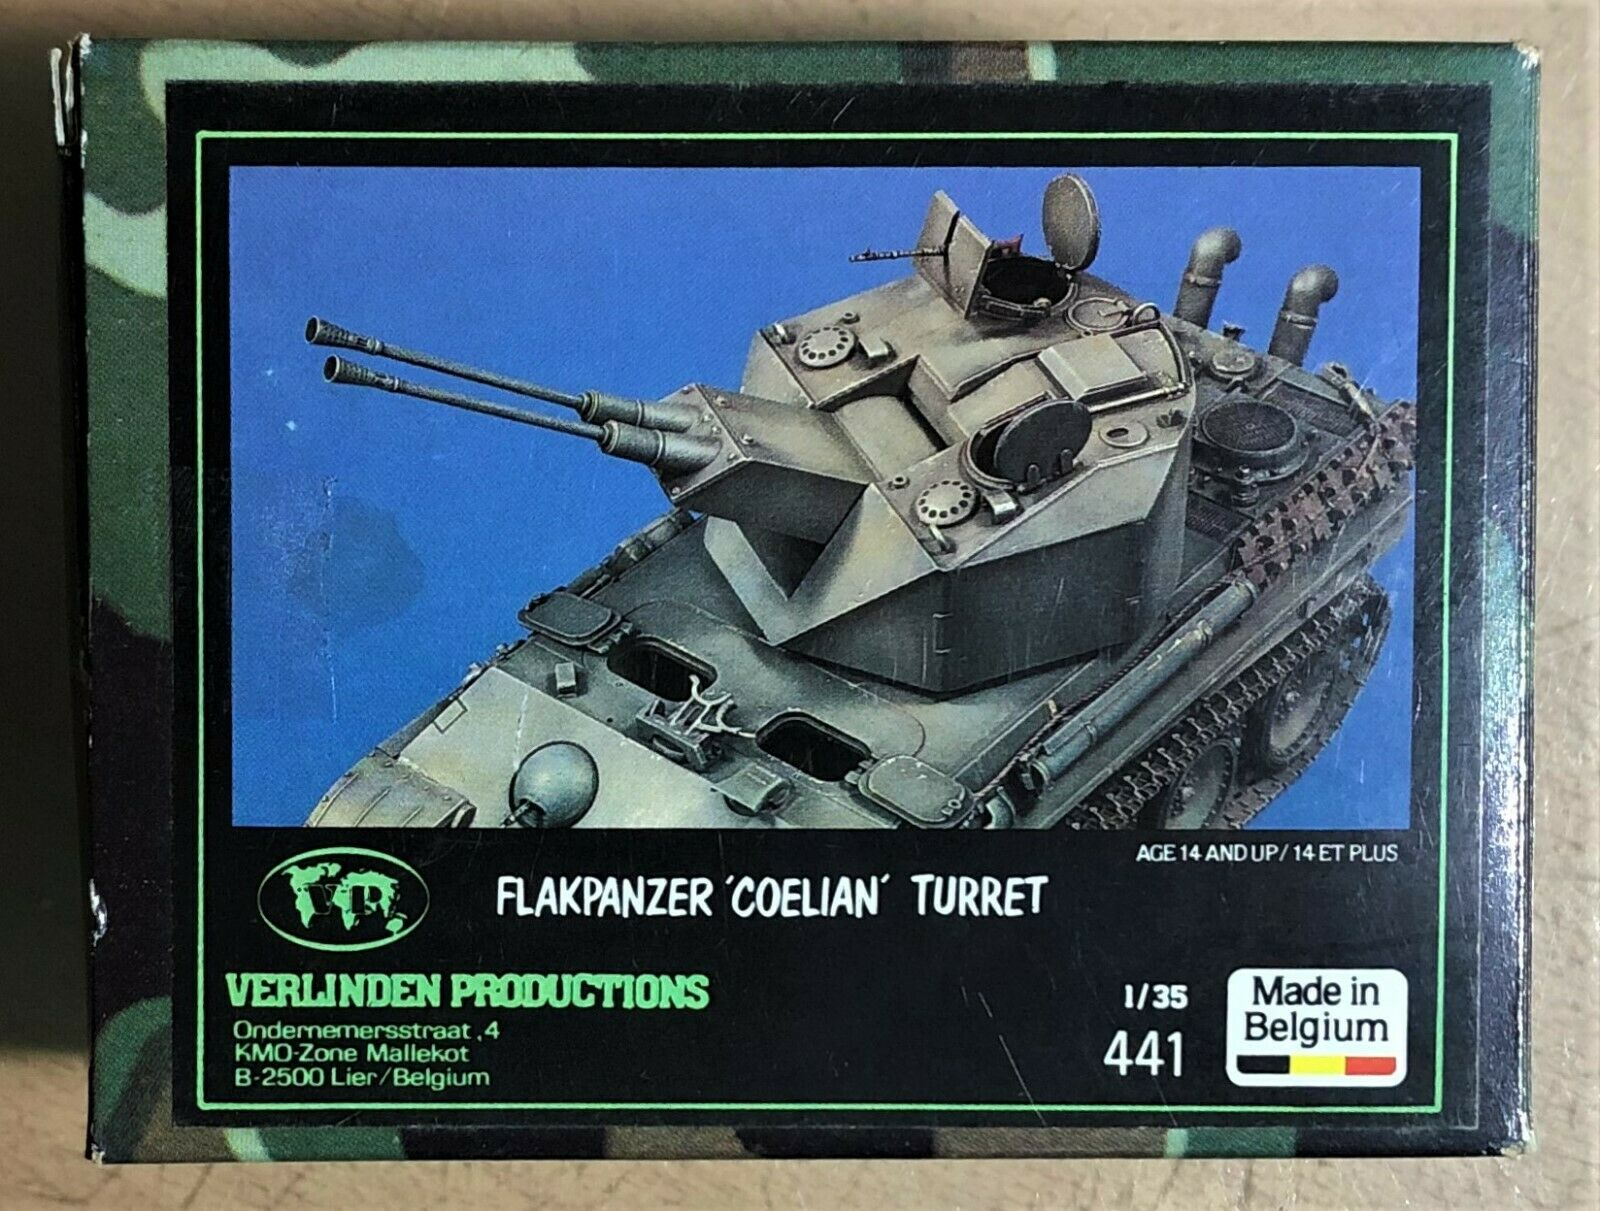 VERLINDEN PRODUCTIONS 441 - FLAKPANZER 'COELIAN' TURRET - 1 35 RESIN KIT